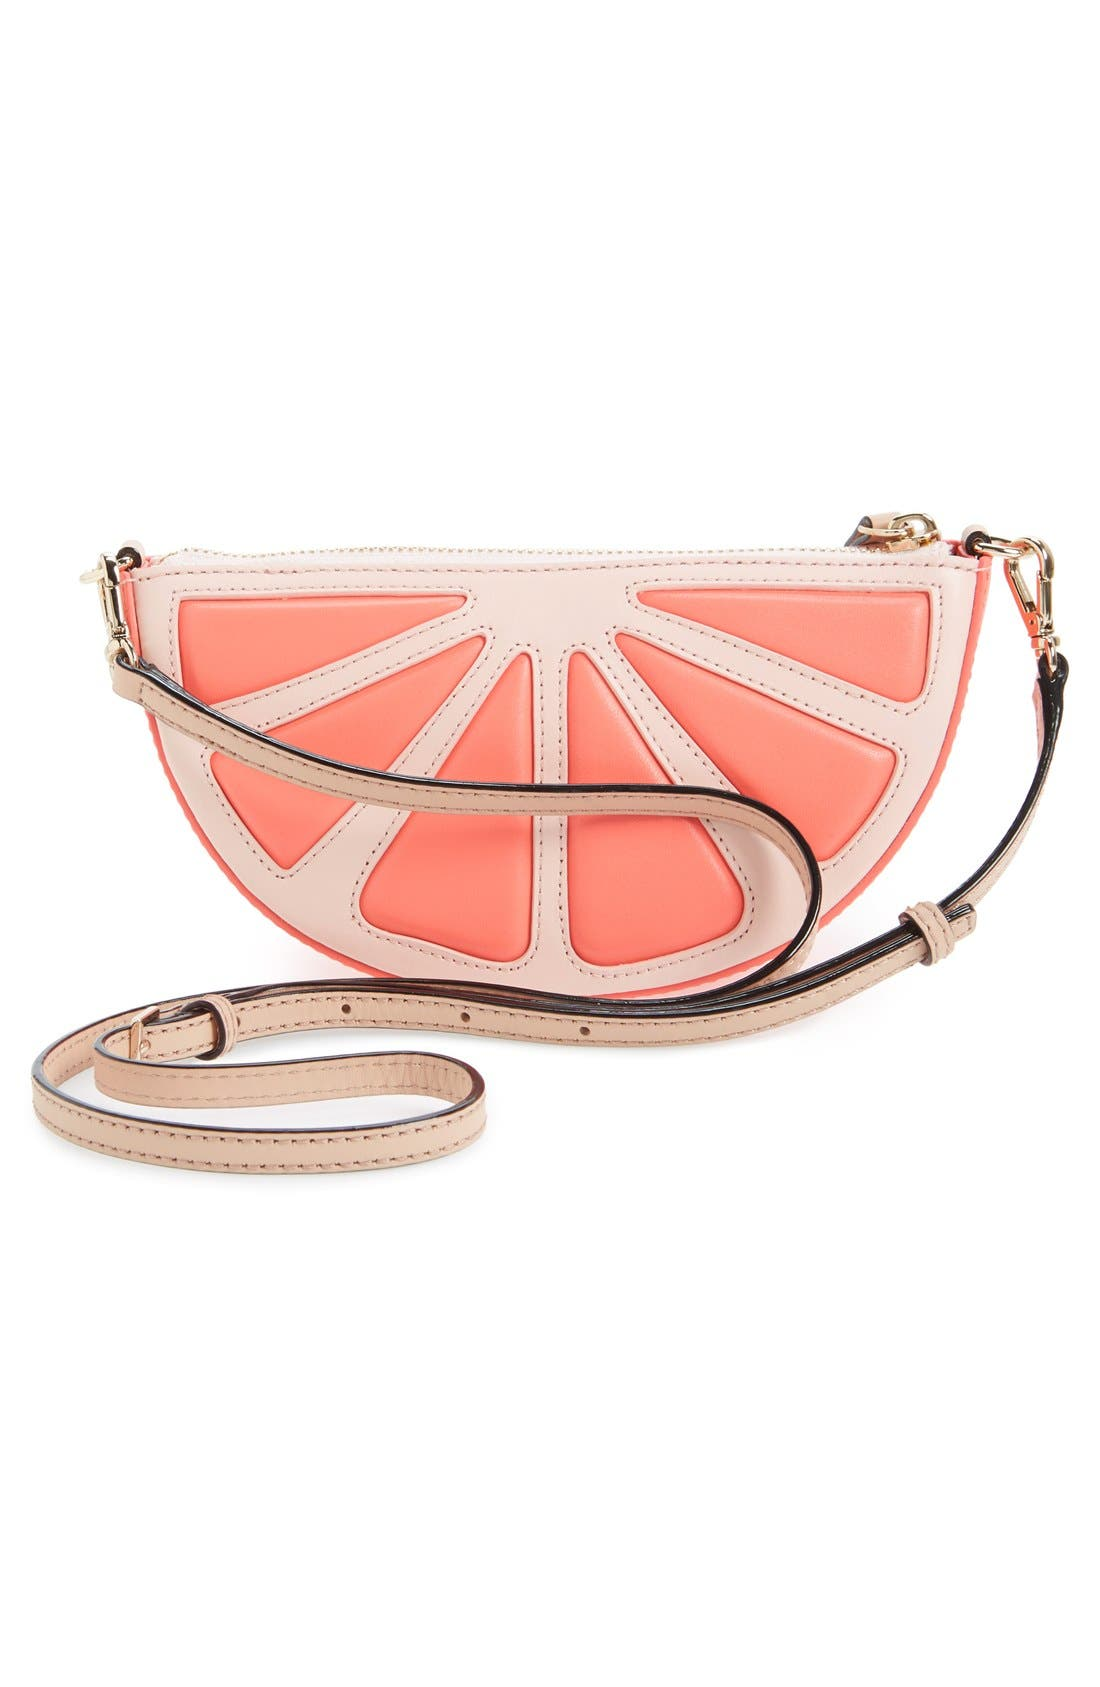 Alternate Image 3  - kate spade new york 'flights of fancy' grapefruit crossbody bag